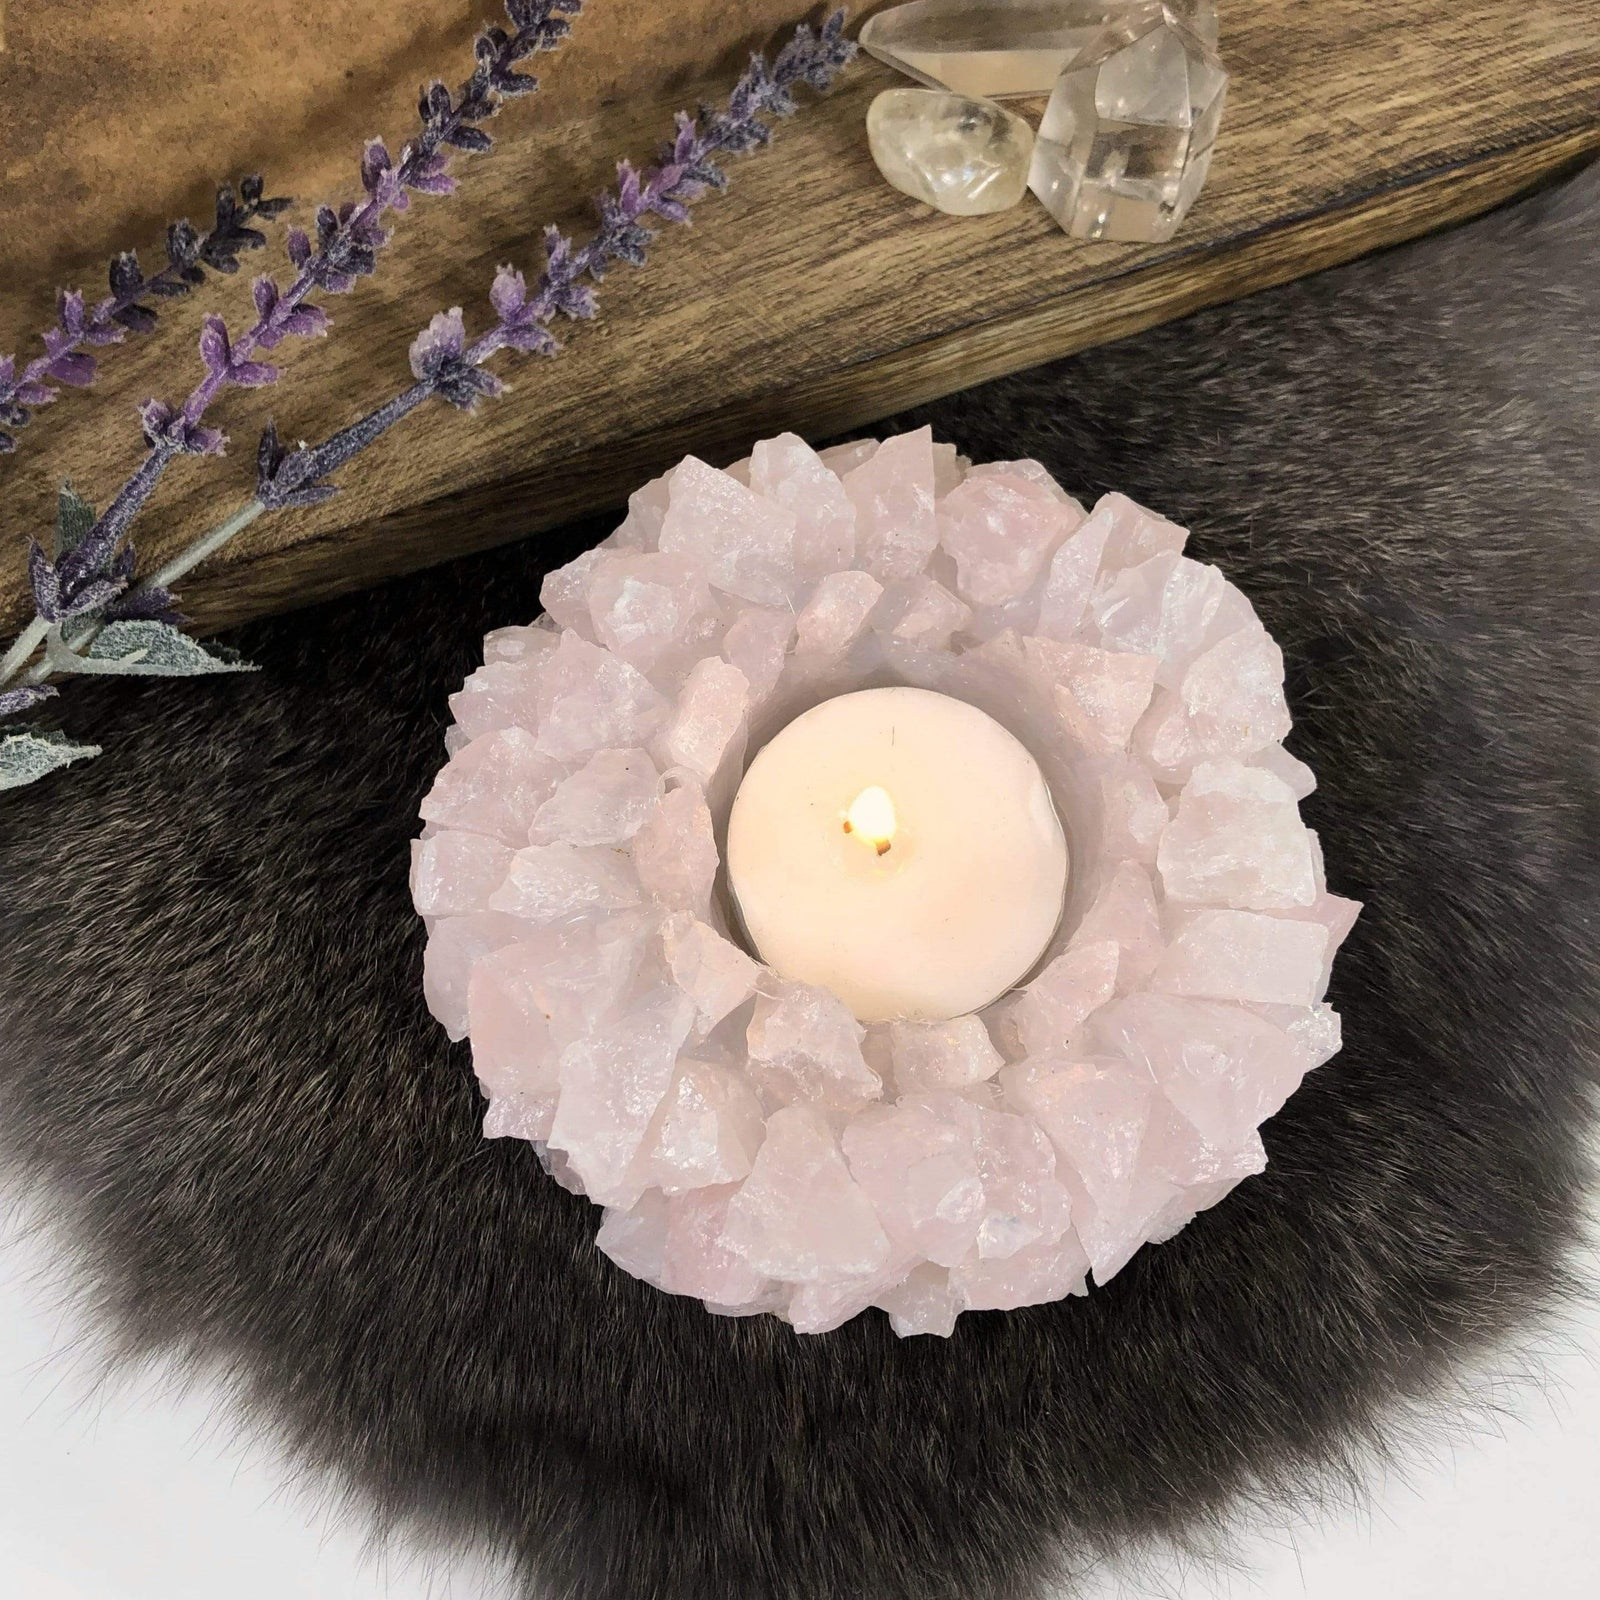 Rose Quartz Candle Holder (HW4-03-RQ)